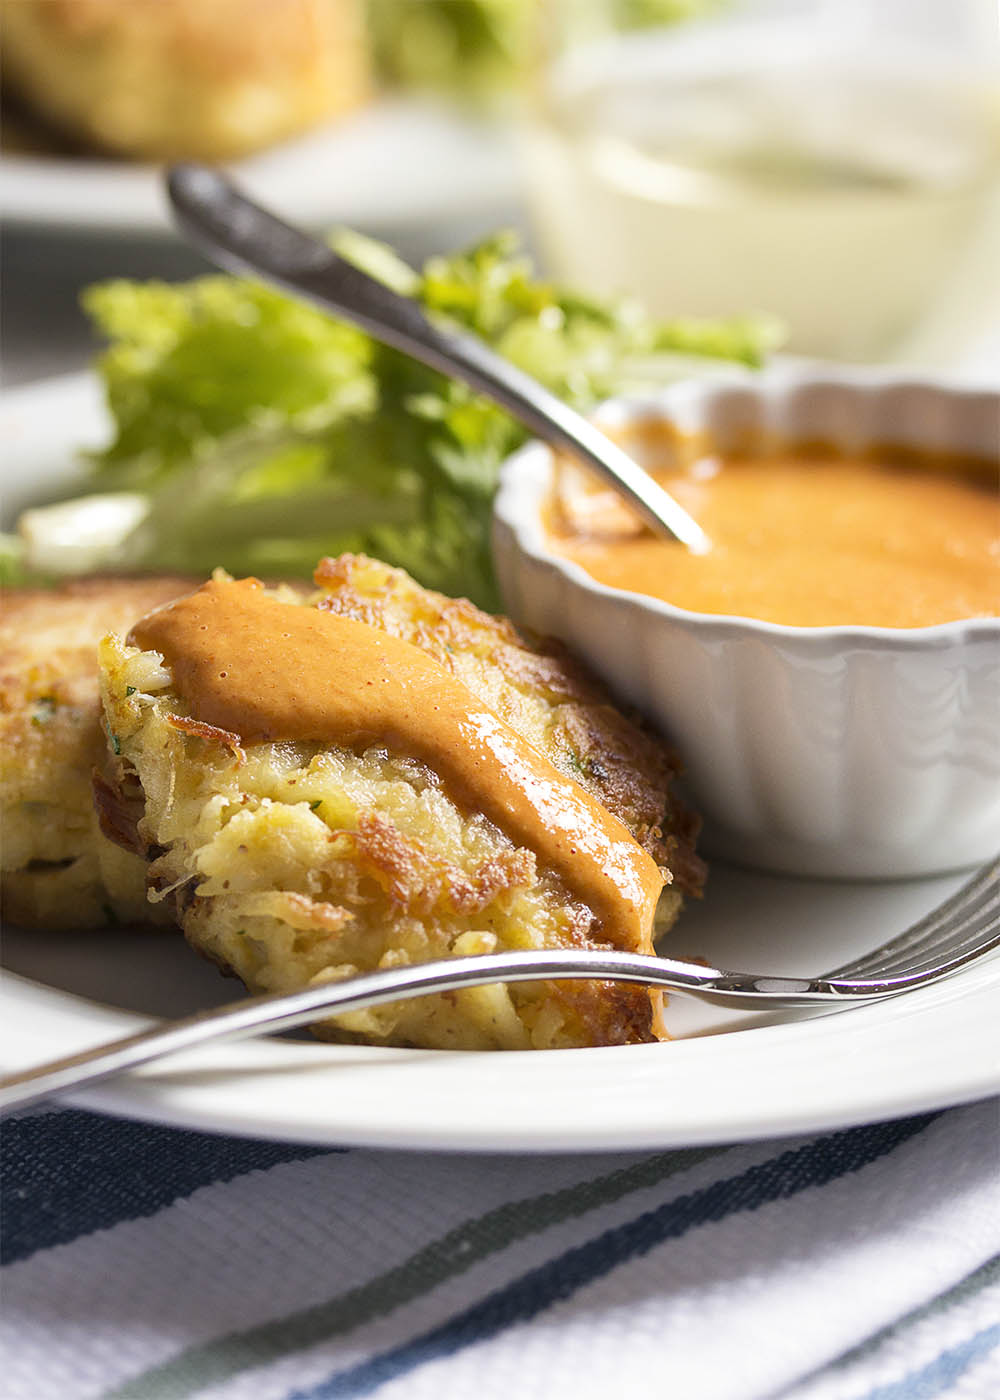 Crab Cakes with Creamy Roasted Red Pepper Sauce - Crab cakes take on Spanish flavors with these paprika spiced cakes which are served alongside a tangy roasted red pepper and cream sauce.   justalittlebitofbacon.com